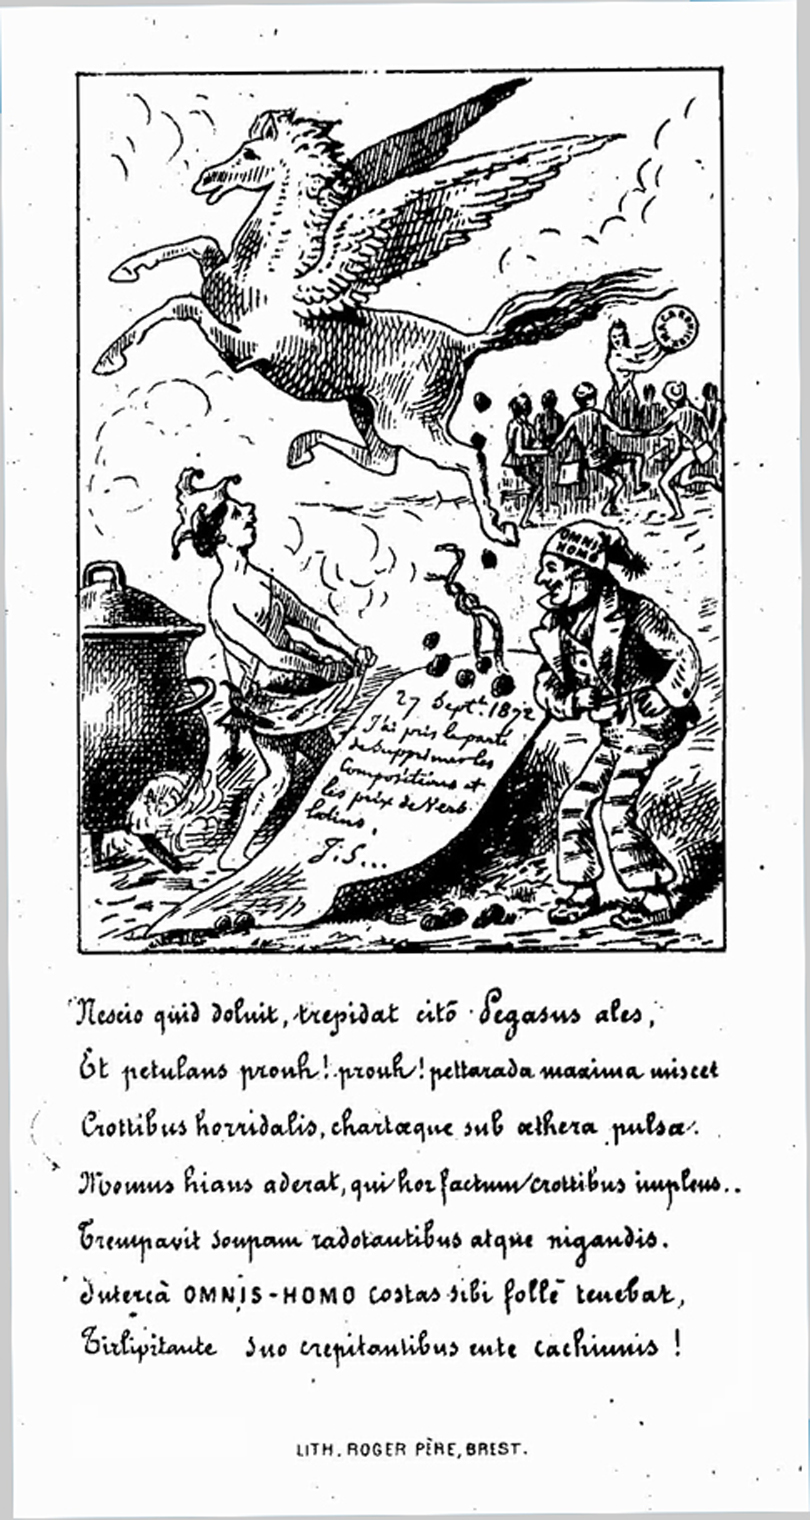 A pen and ink cartoon of Pegasus flying in the sky and pooping on an poster of an edict by Jules Simon.  It is held by a joker standing on earth below.  It was drawn in the late 19th century.